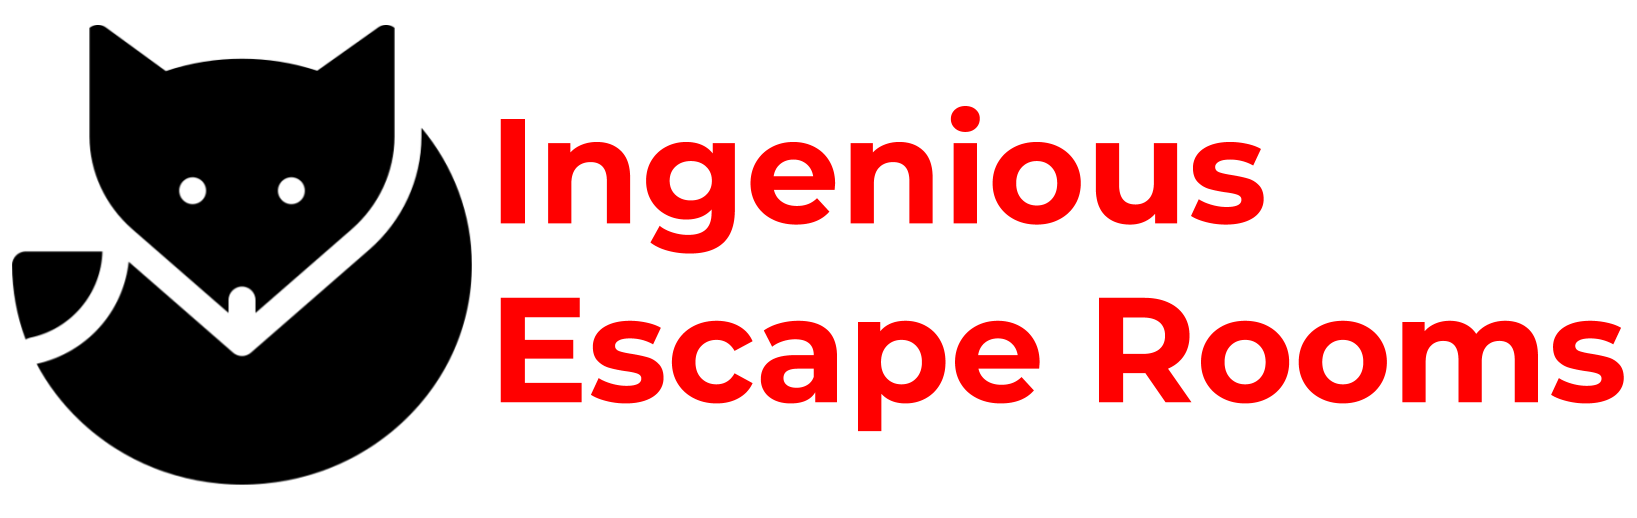 Ingenious Escape Rooms |   FAQs